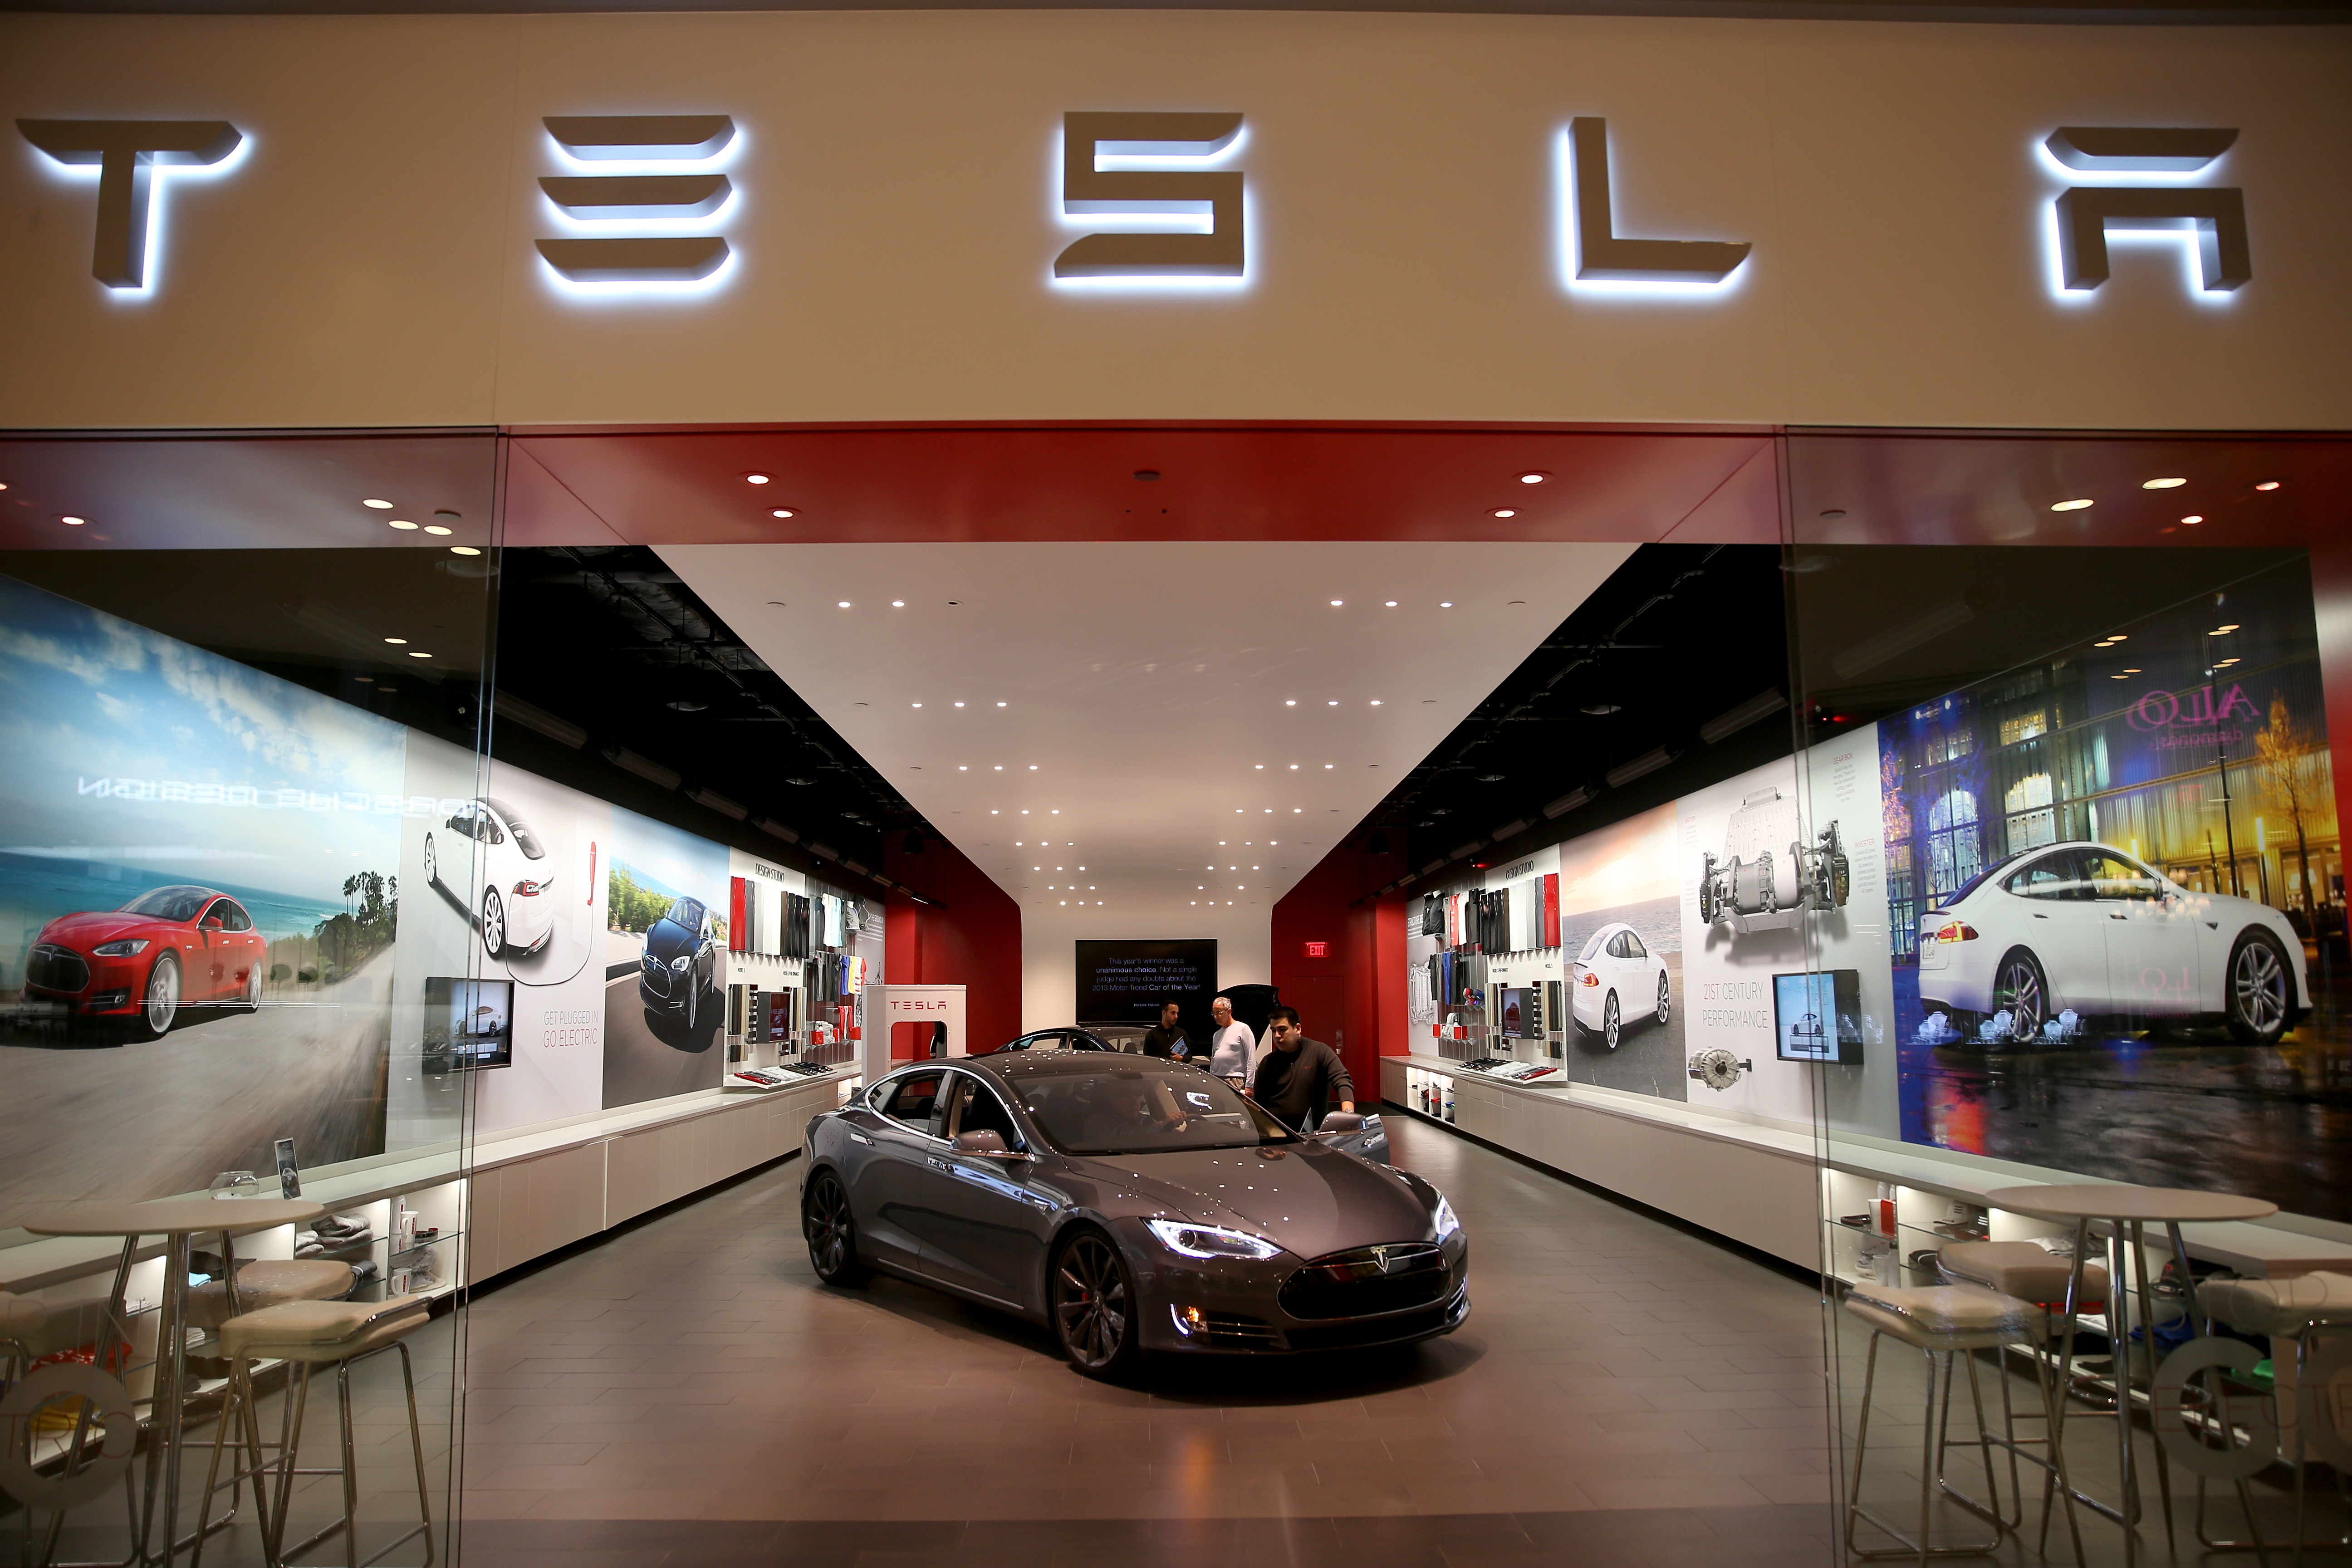 People look at a Tesla Motors vehicle on the showroom floor at the Dadeland Mall on February 19, 2014 in Miami, Florida.